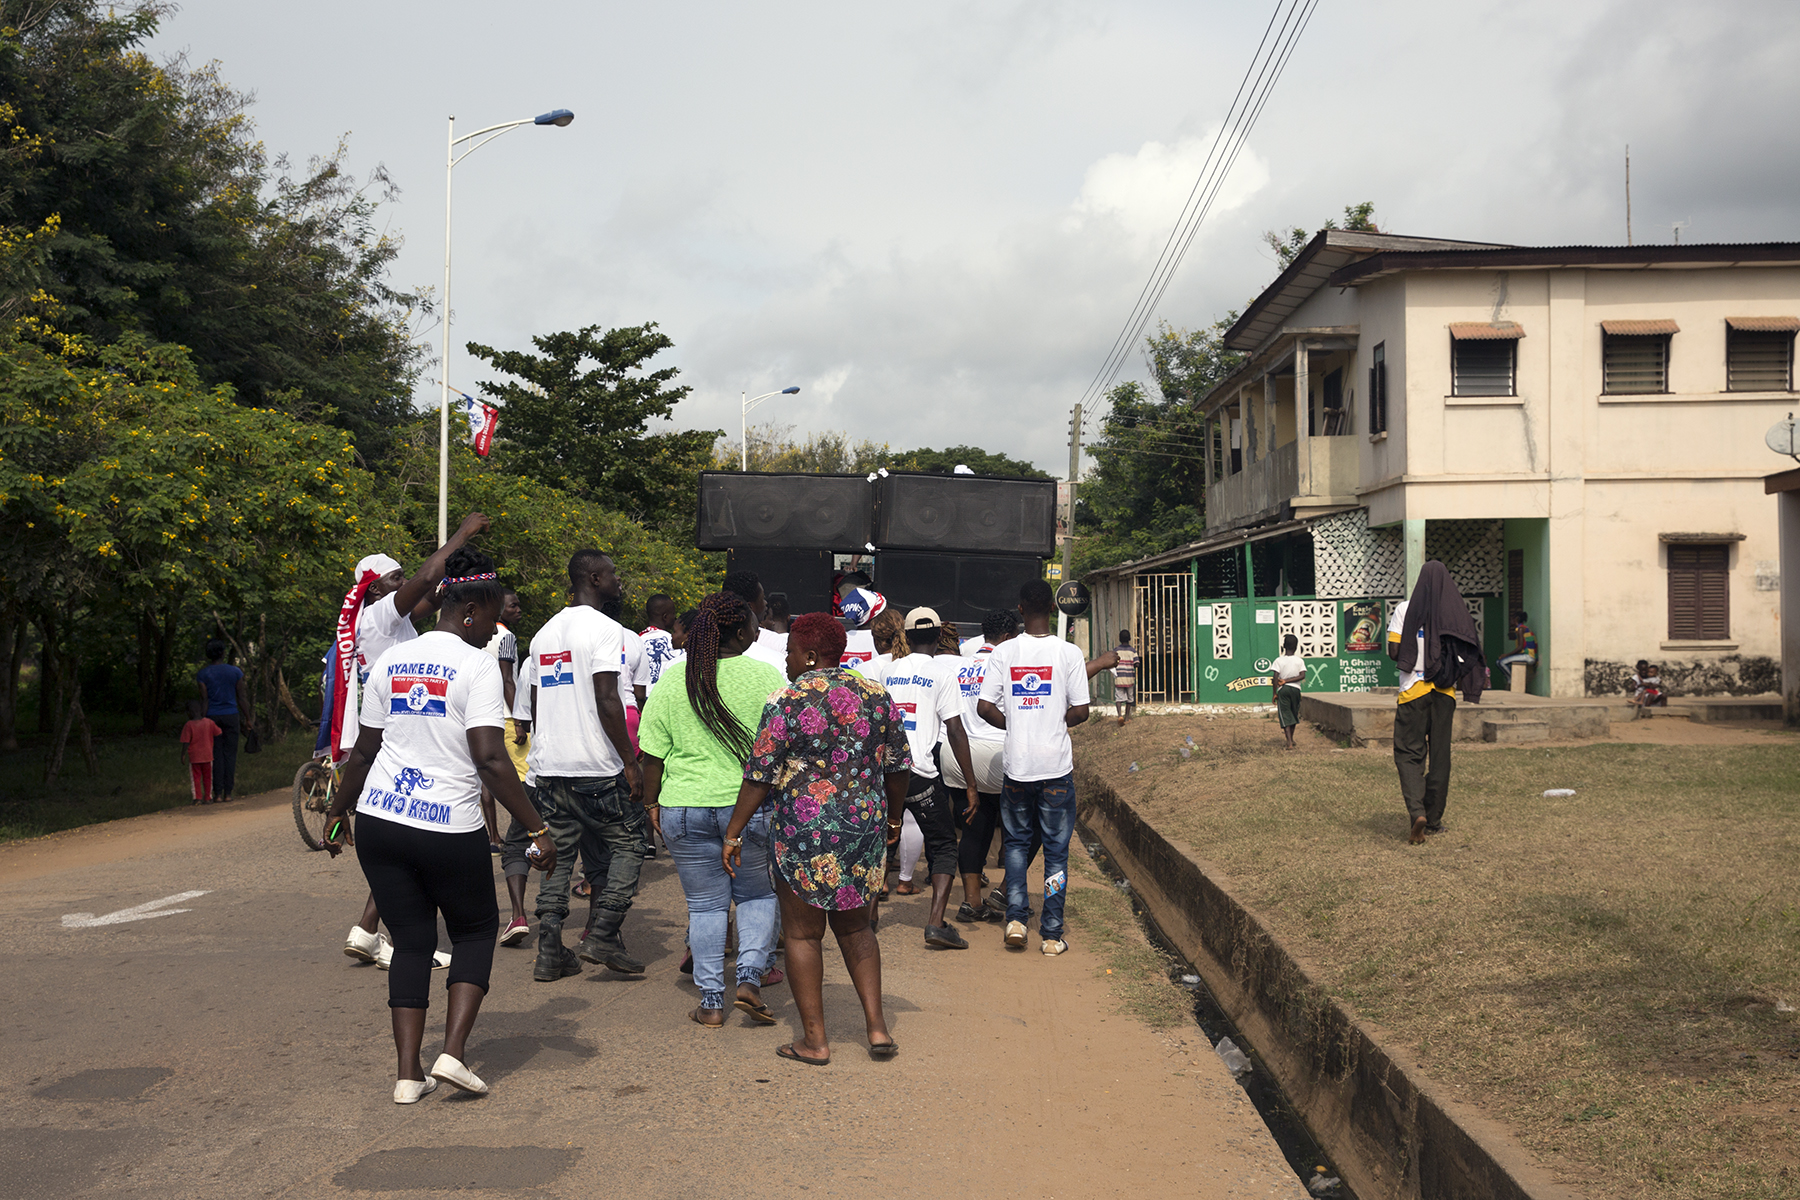 The tail-end of the NPP parade